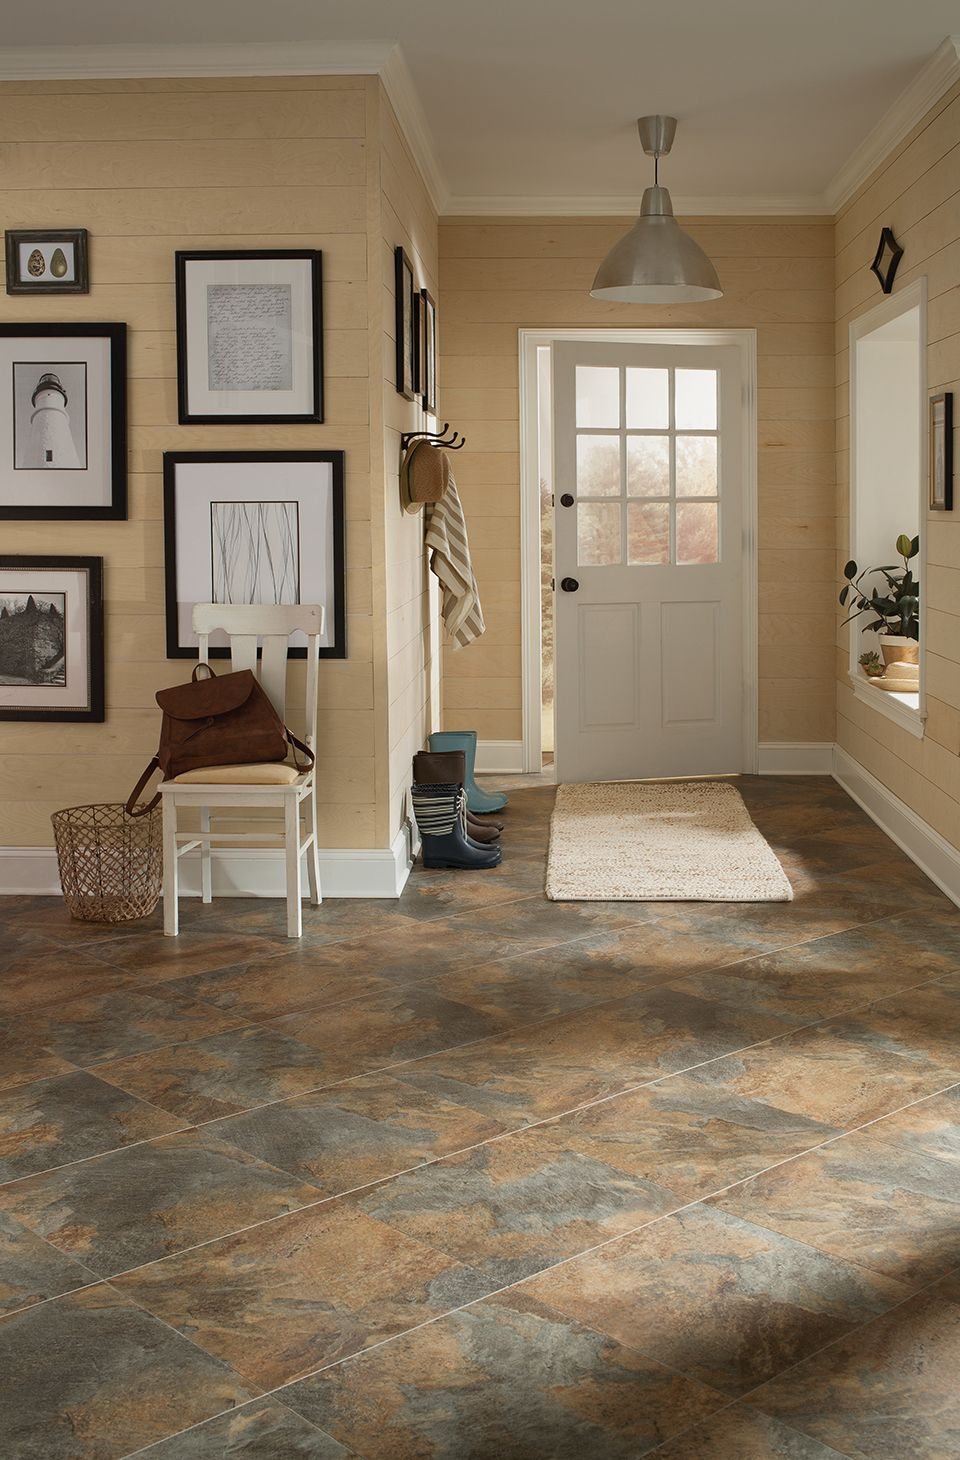 Stainmaster 18 In X 18 In Groutable Coppermine Peel And Stick Luxury Vinyl Tile Lowes Com Luxury Vinyl Tile Vinyl Flooring Kitchen Flooring